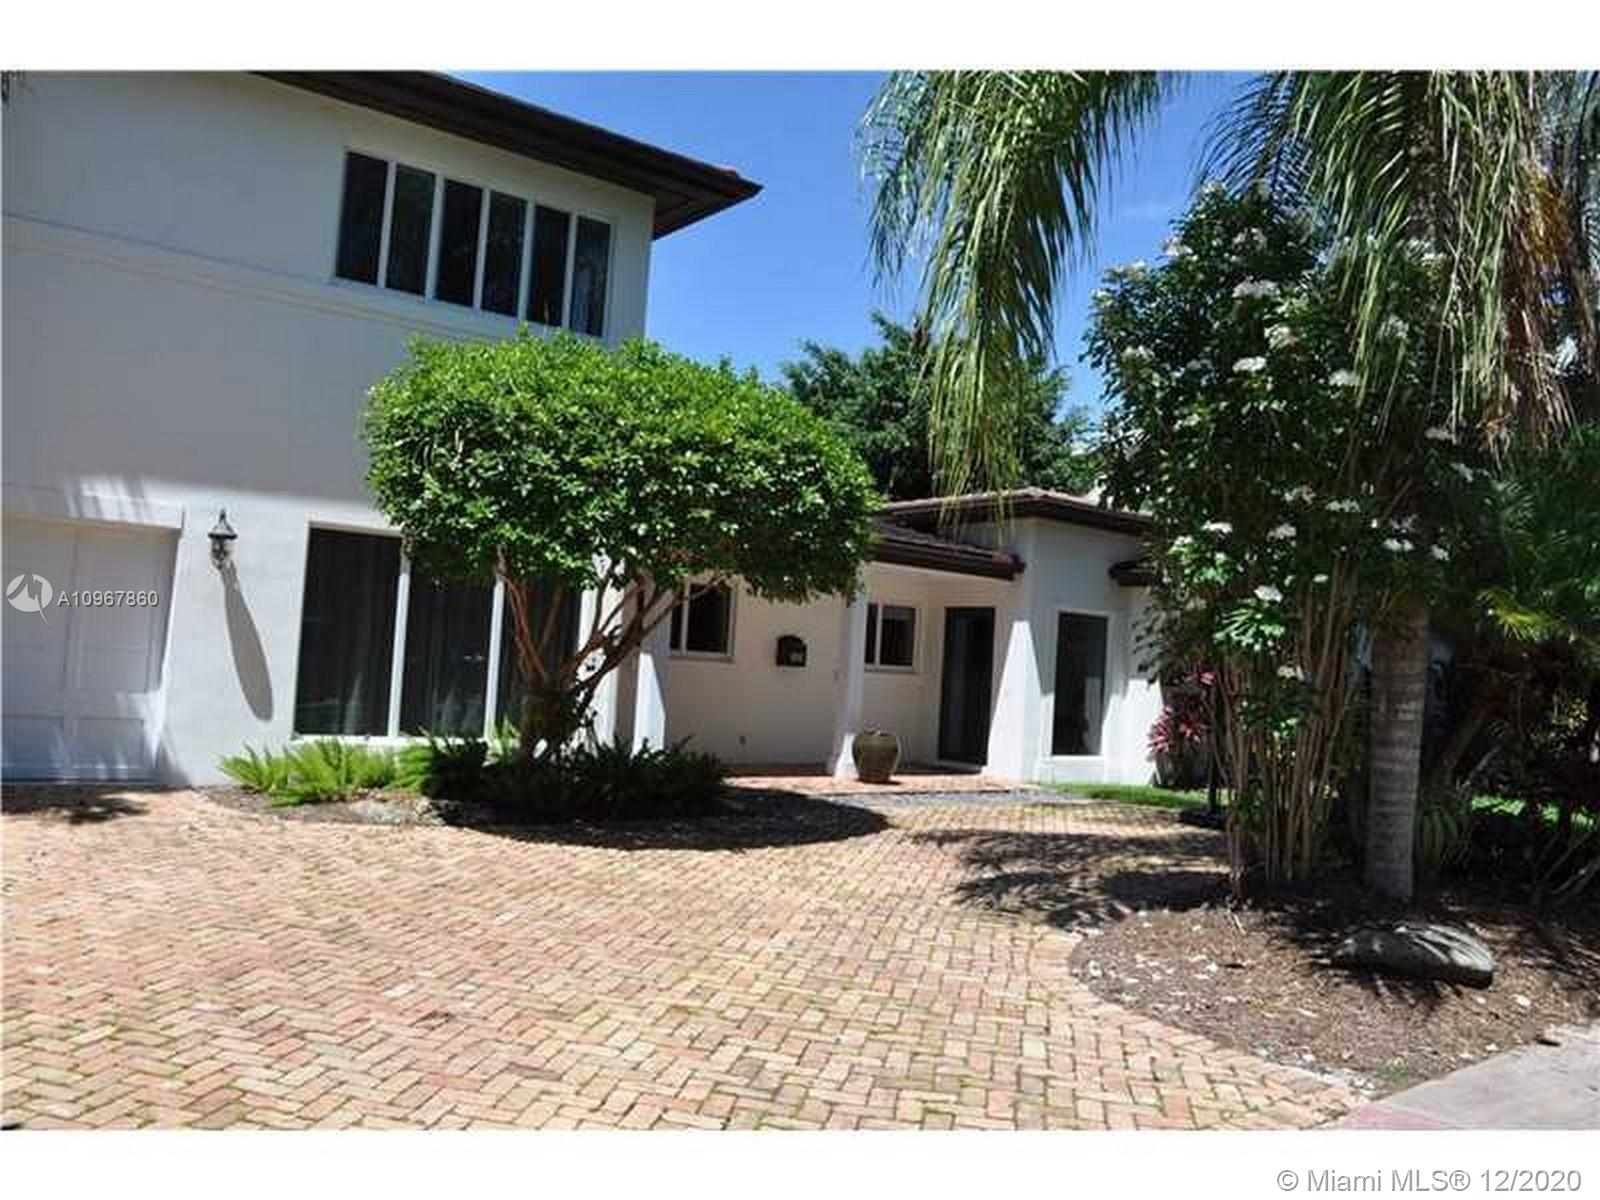 South Miami - 6845 Veronese St, Coral Gables, FL 33146